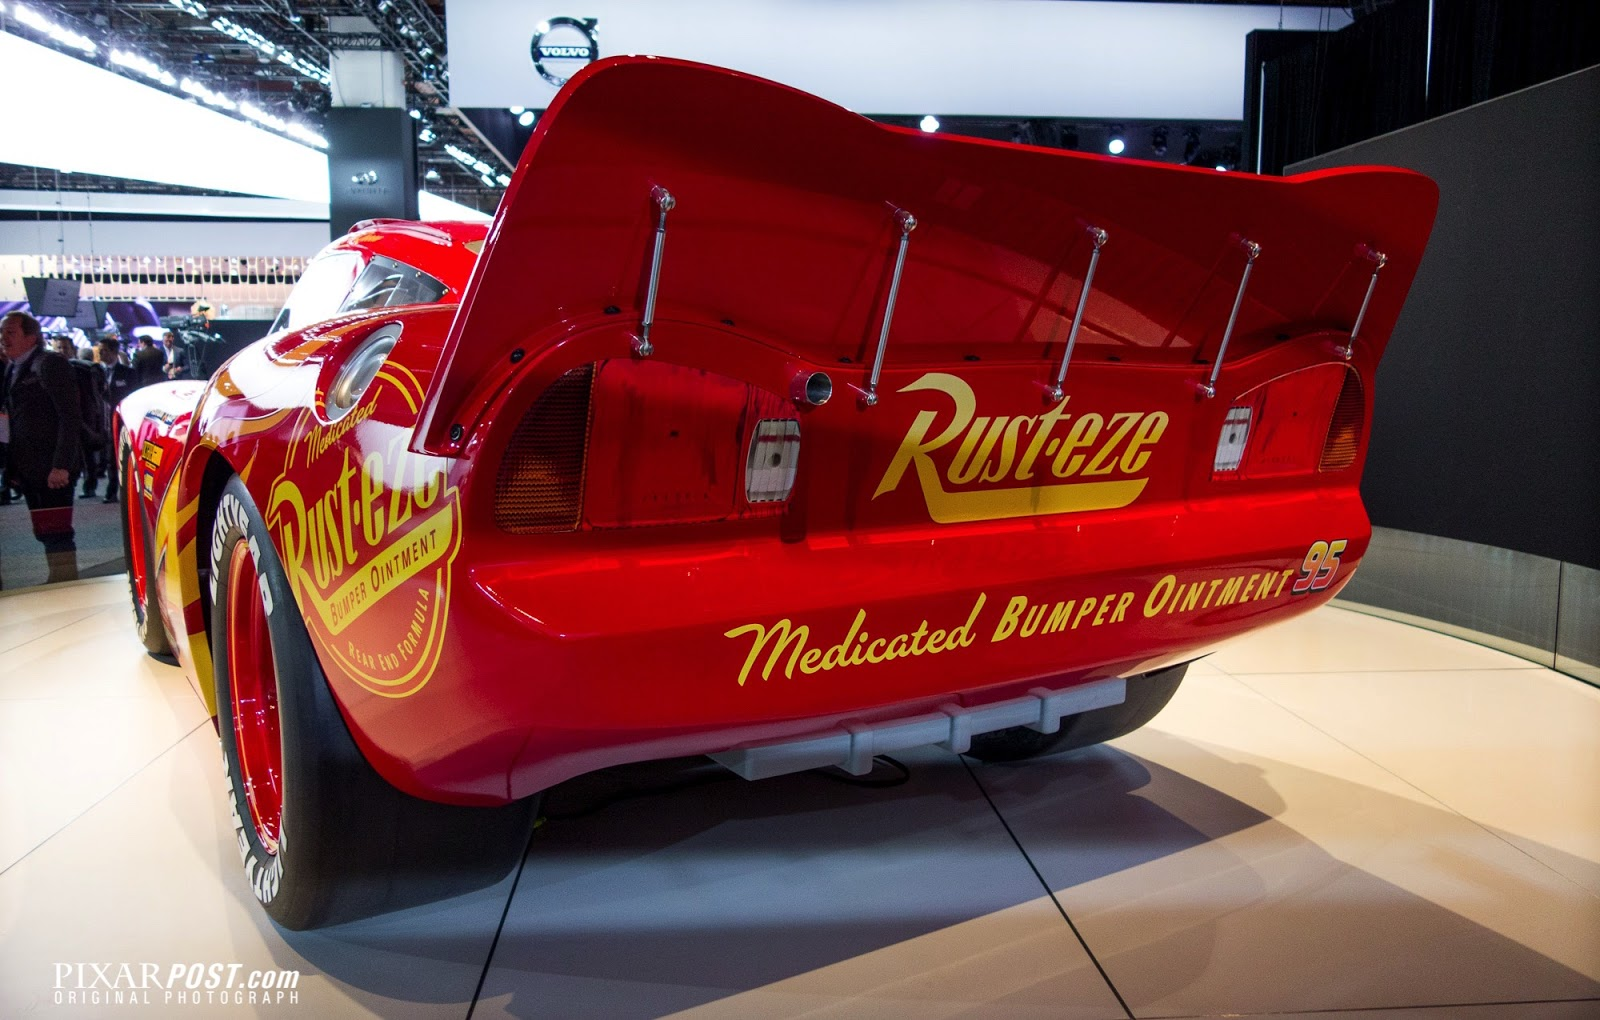 Lightning mcqueen with updated cars 3 design on display at the 2017 detroit auto